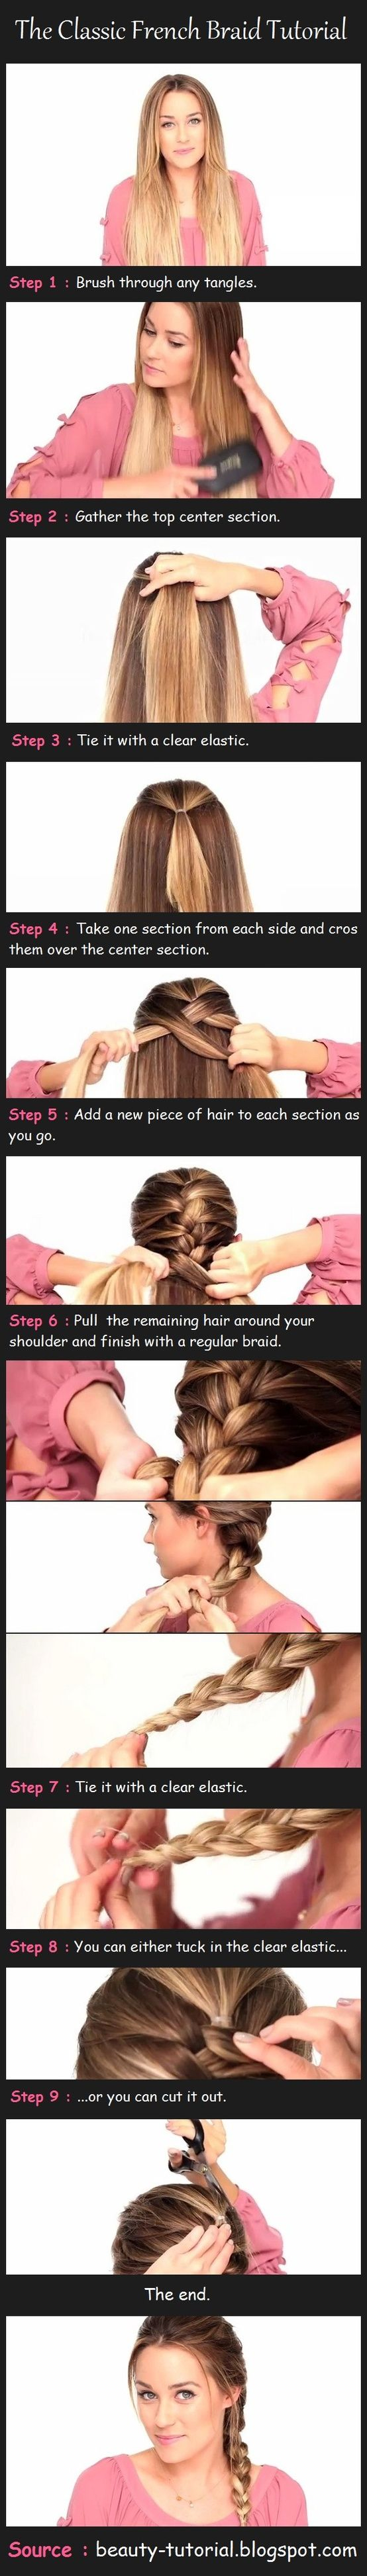 French Braid - never though of doing a small ponytail to start with!!!: French Braids, Frenchbraid, Hair Styles, Hairdos, Hair Tutorial, French Braid Tutorial, Hair Do, Hairstyle, Classic French